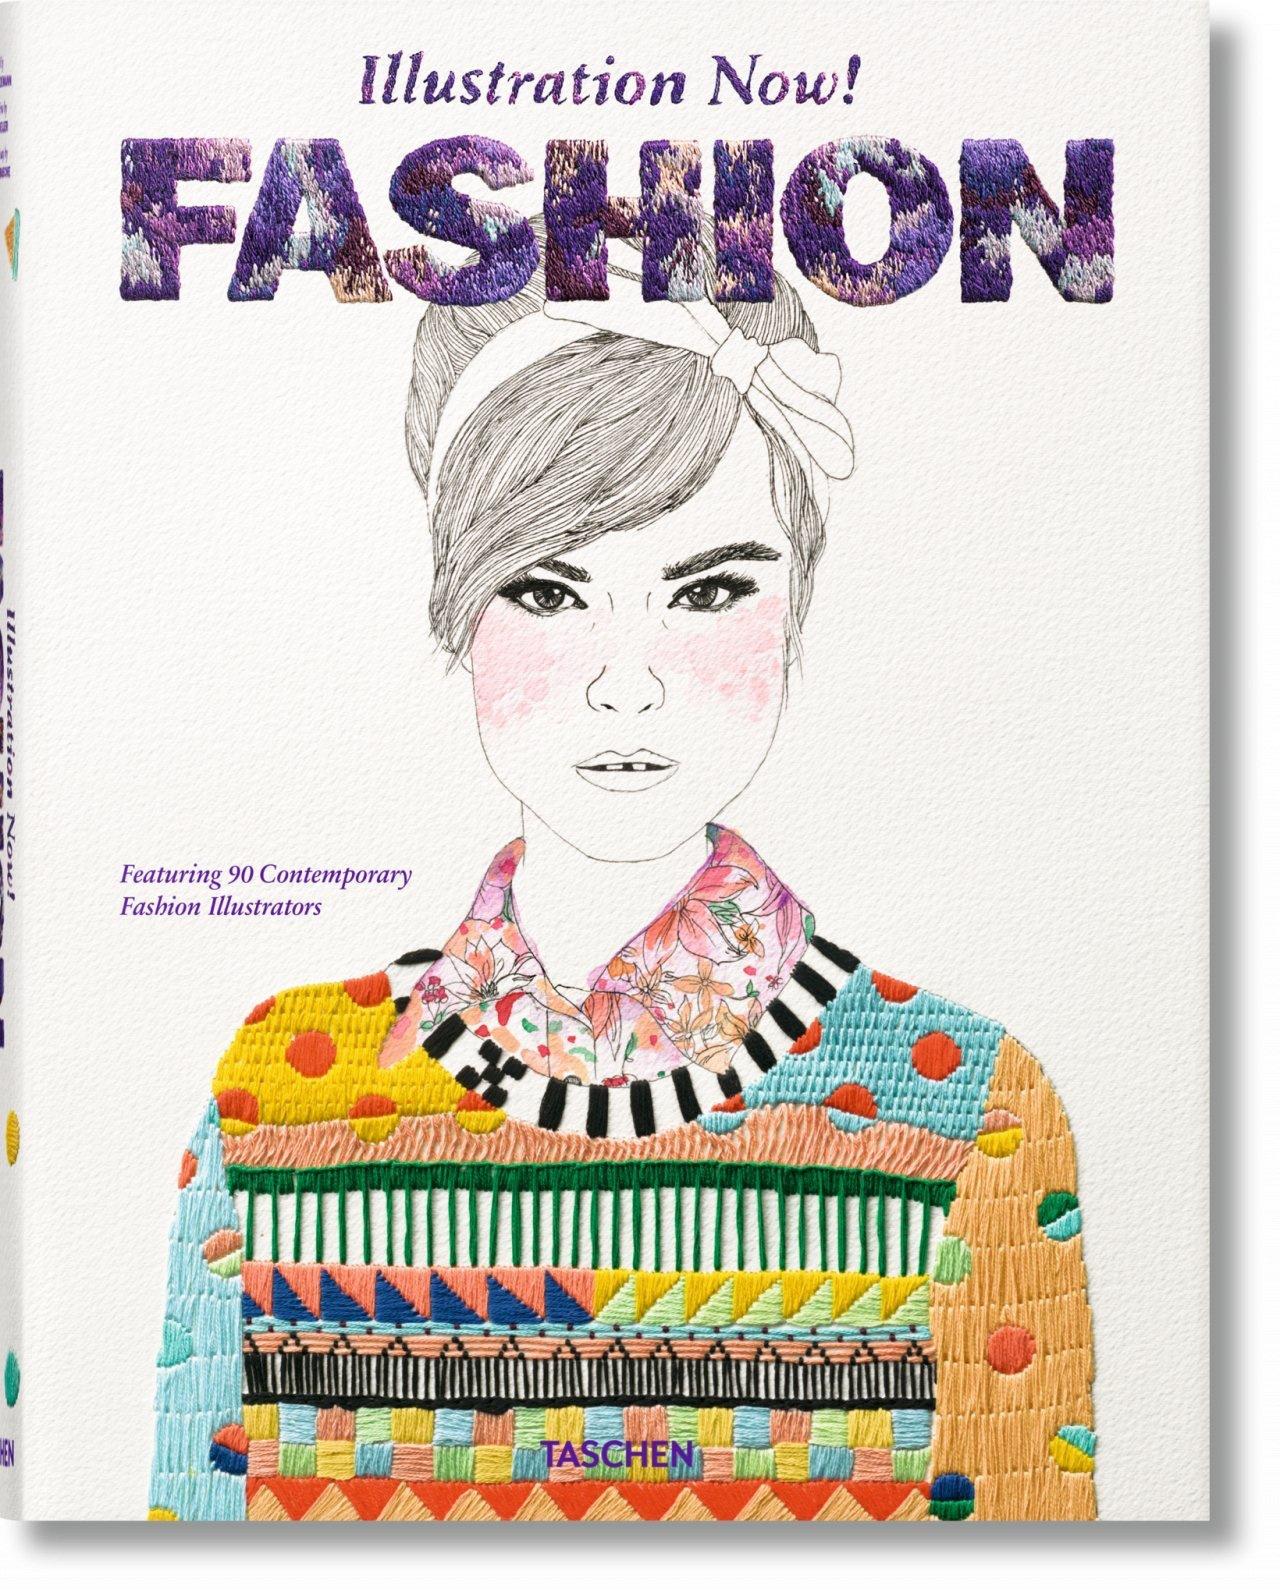 MI- ILLUSTRATION NOW! FASHION